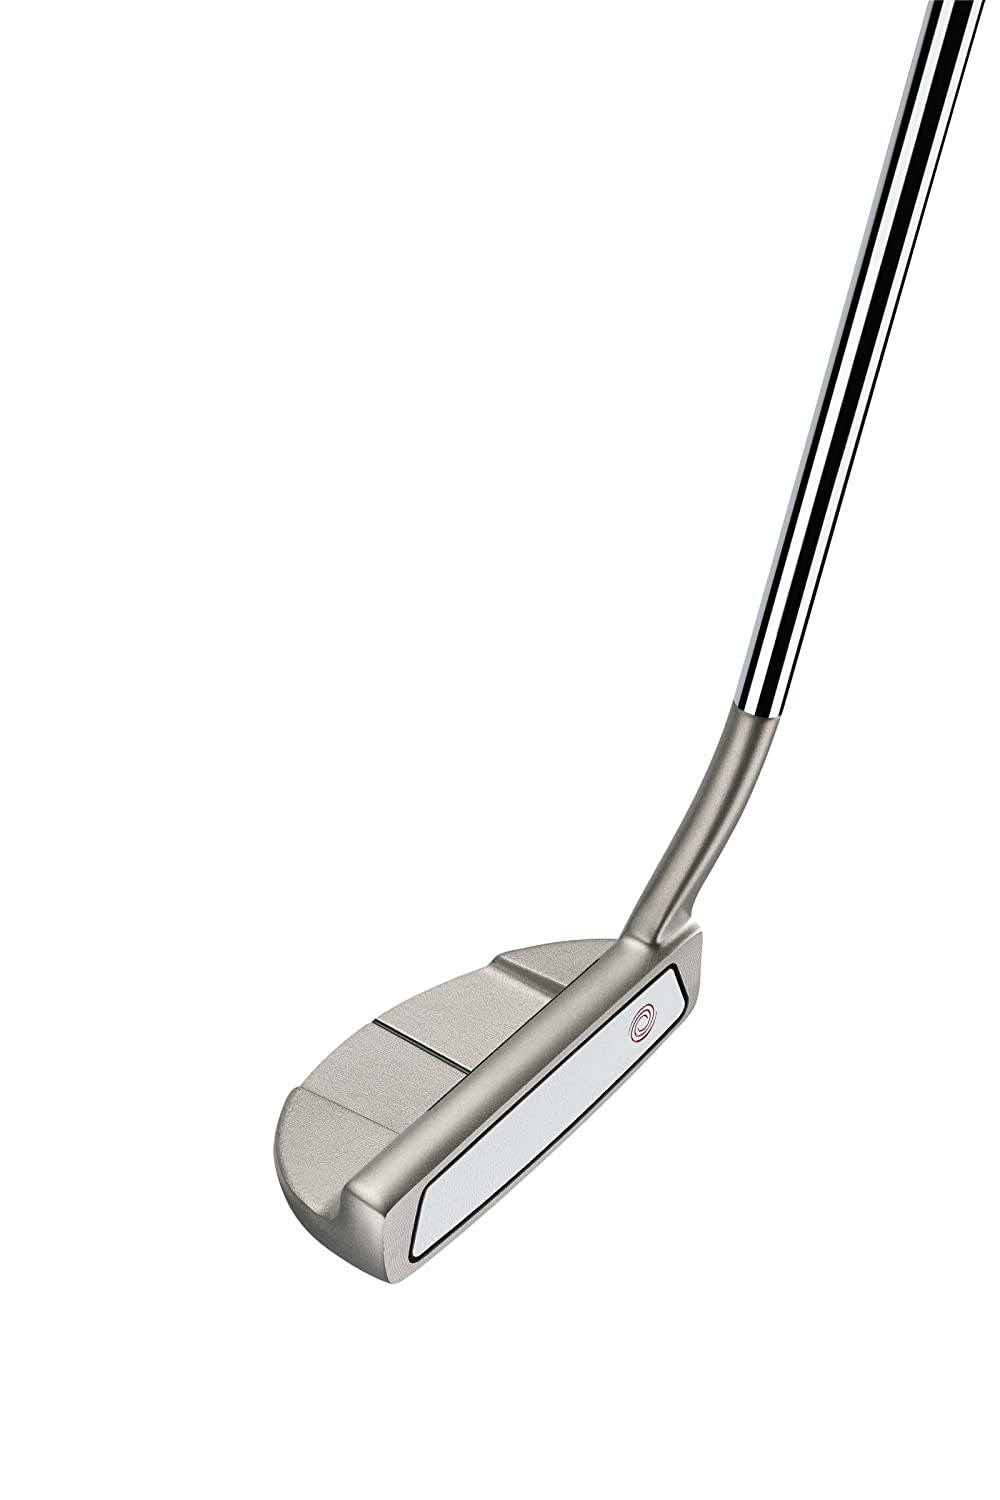 Callaway White Hot Pro 2.0 9 - Putter